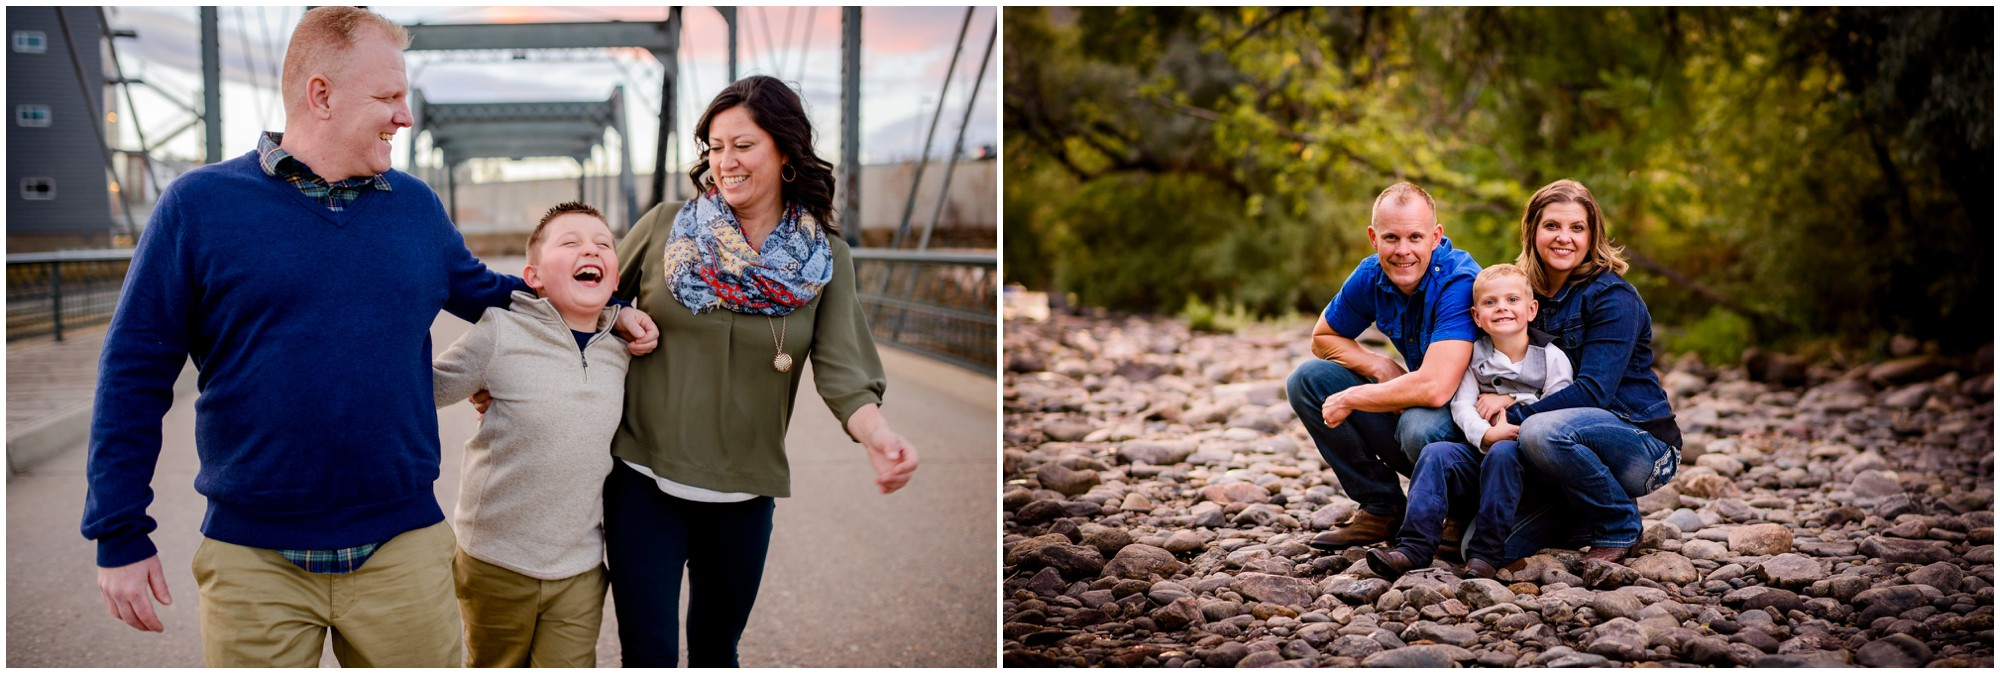 184-RiNo-downtown-denver-engagement-photos.jpg